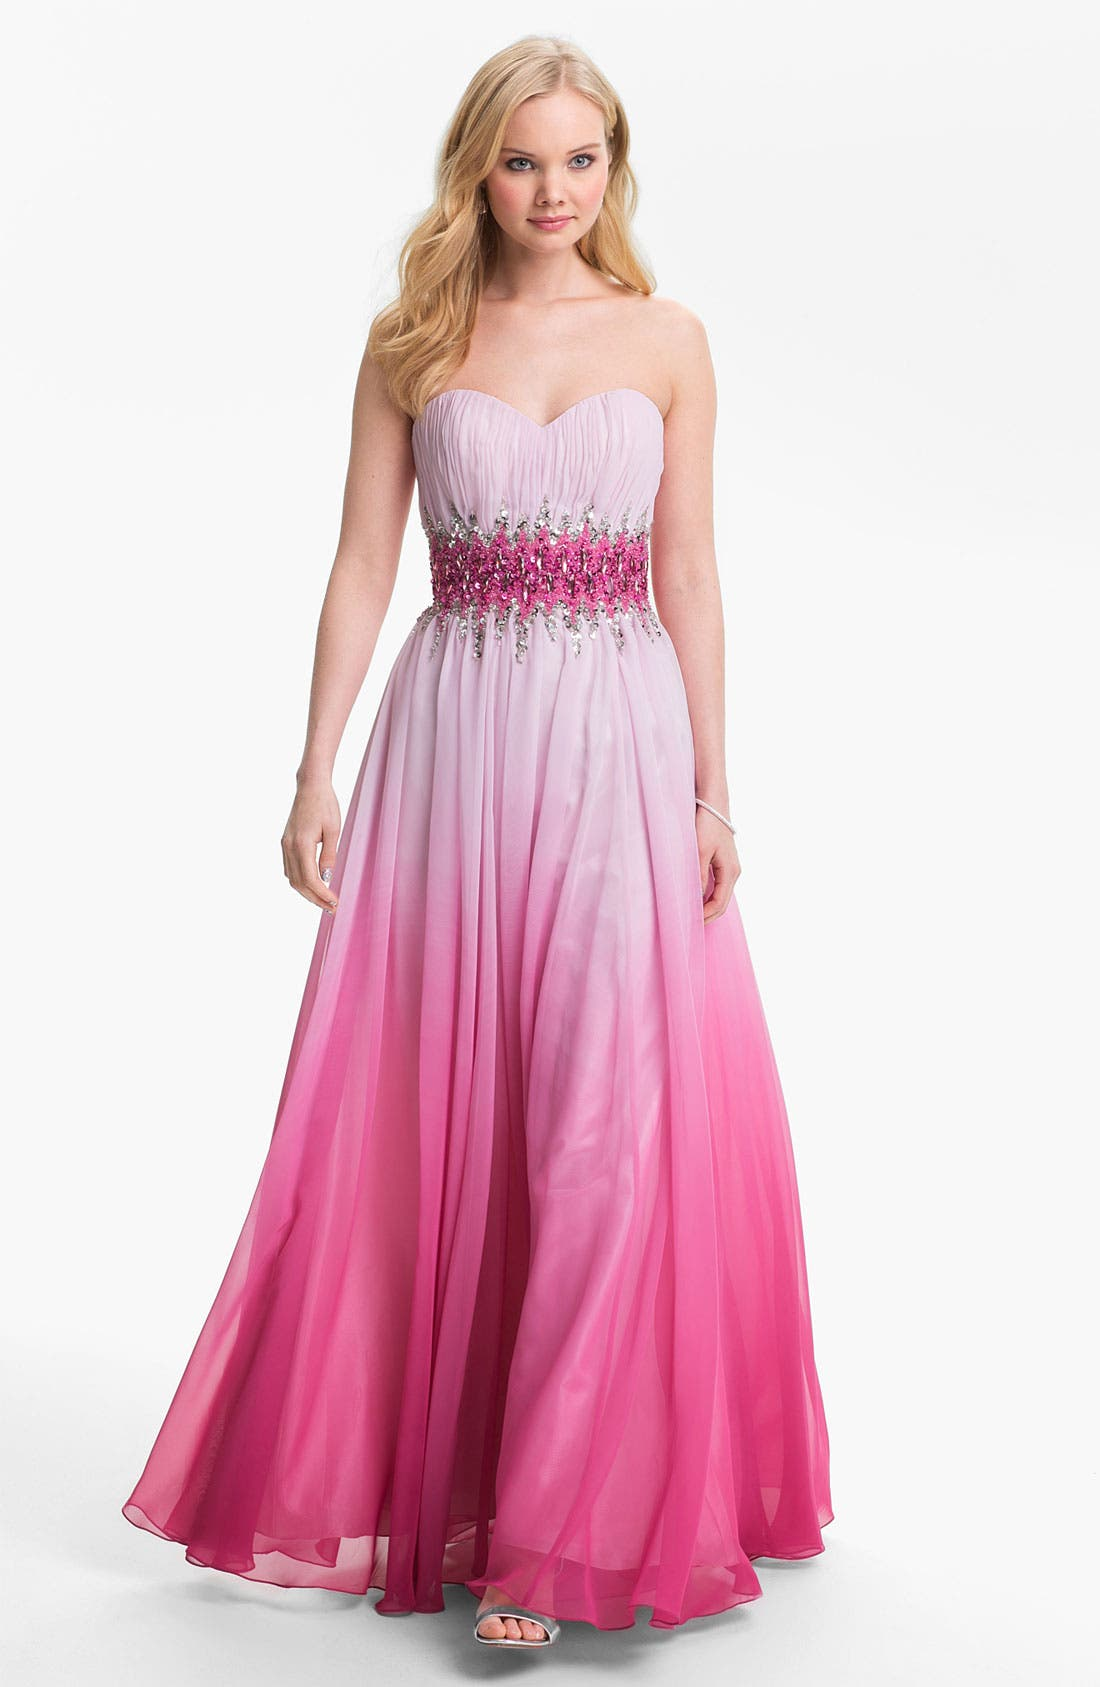 Main Image - Sean Collection Ball Gown & Accessories